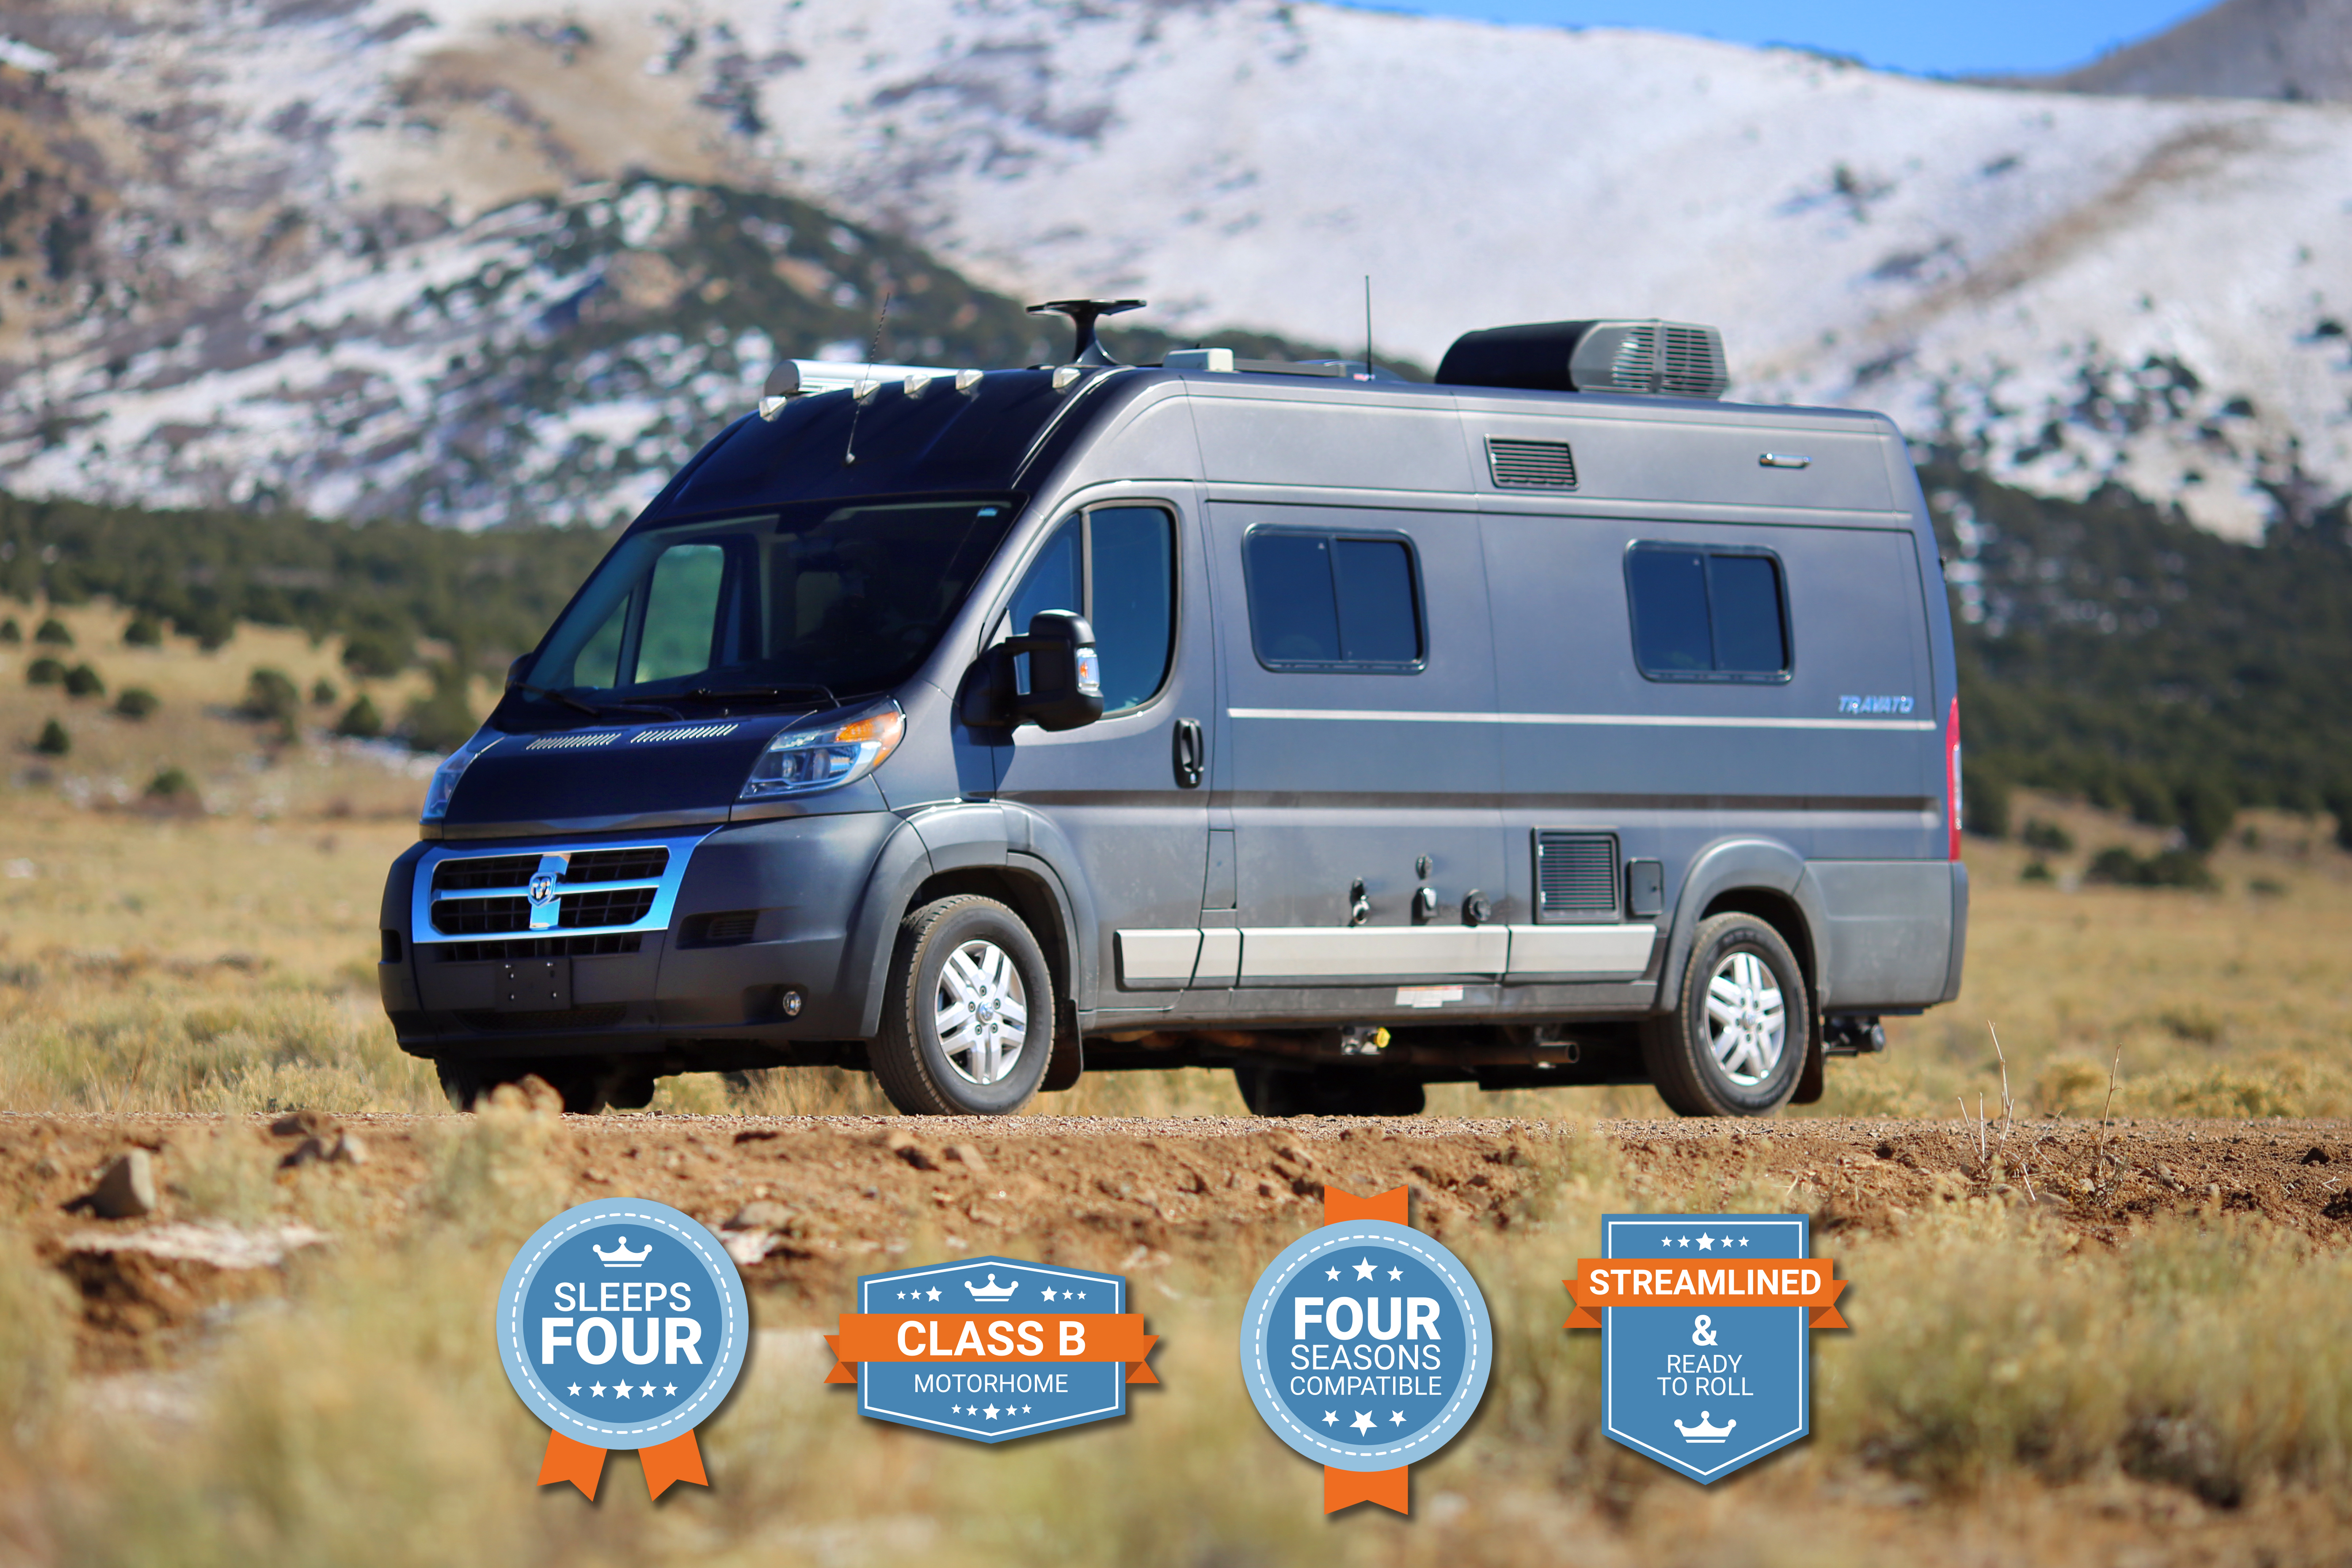 The Winnebago Travato is fully equipped, thoughtfully designed, and ready to provide opportunities for couples, friends, and families.. Winnebago Travato 2018